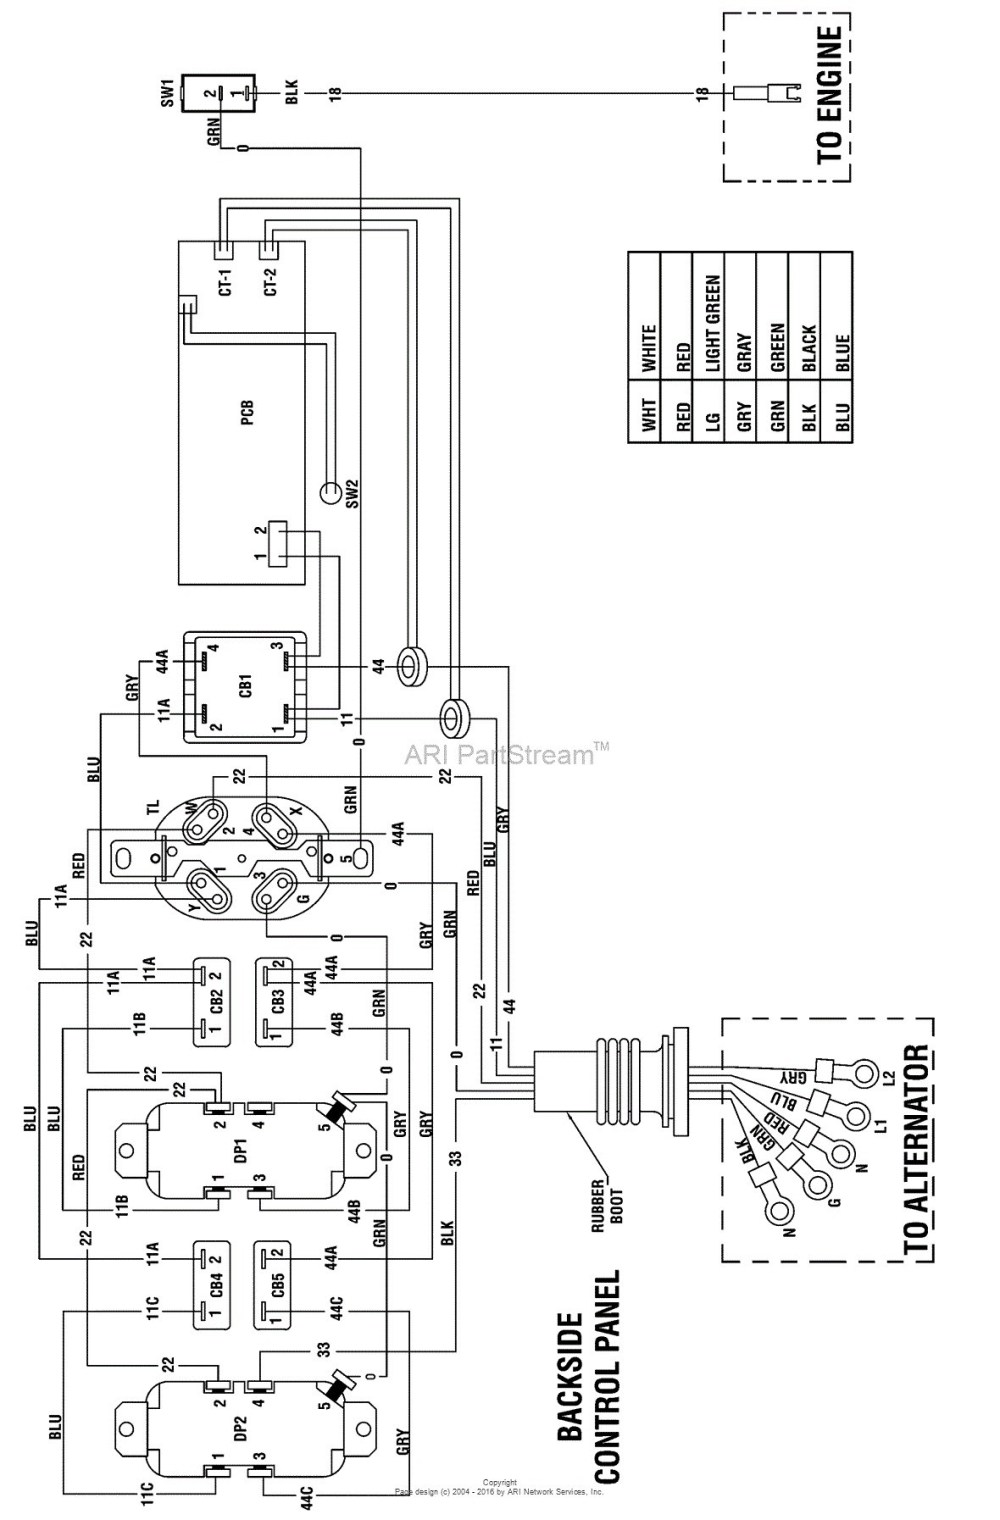 medium resolution of briggs and stratton engine diagrams briggs stratton engine diagram 2 briggs and stratton wiring diagram of